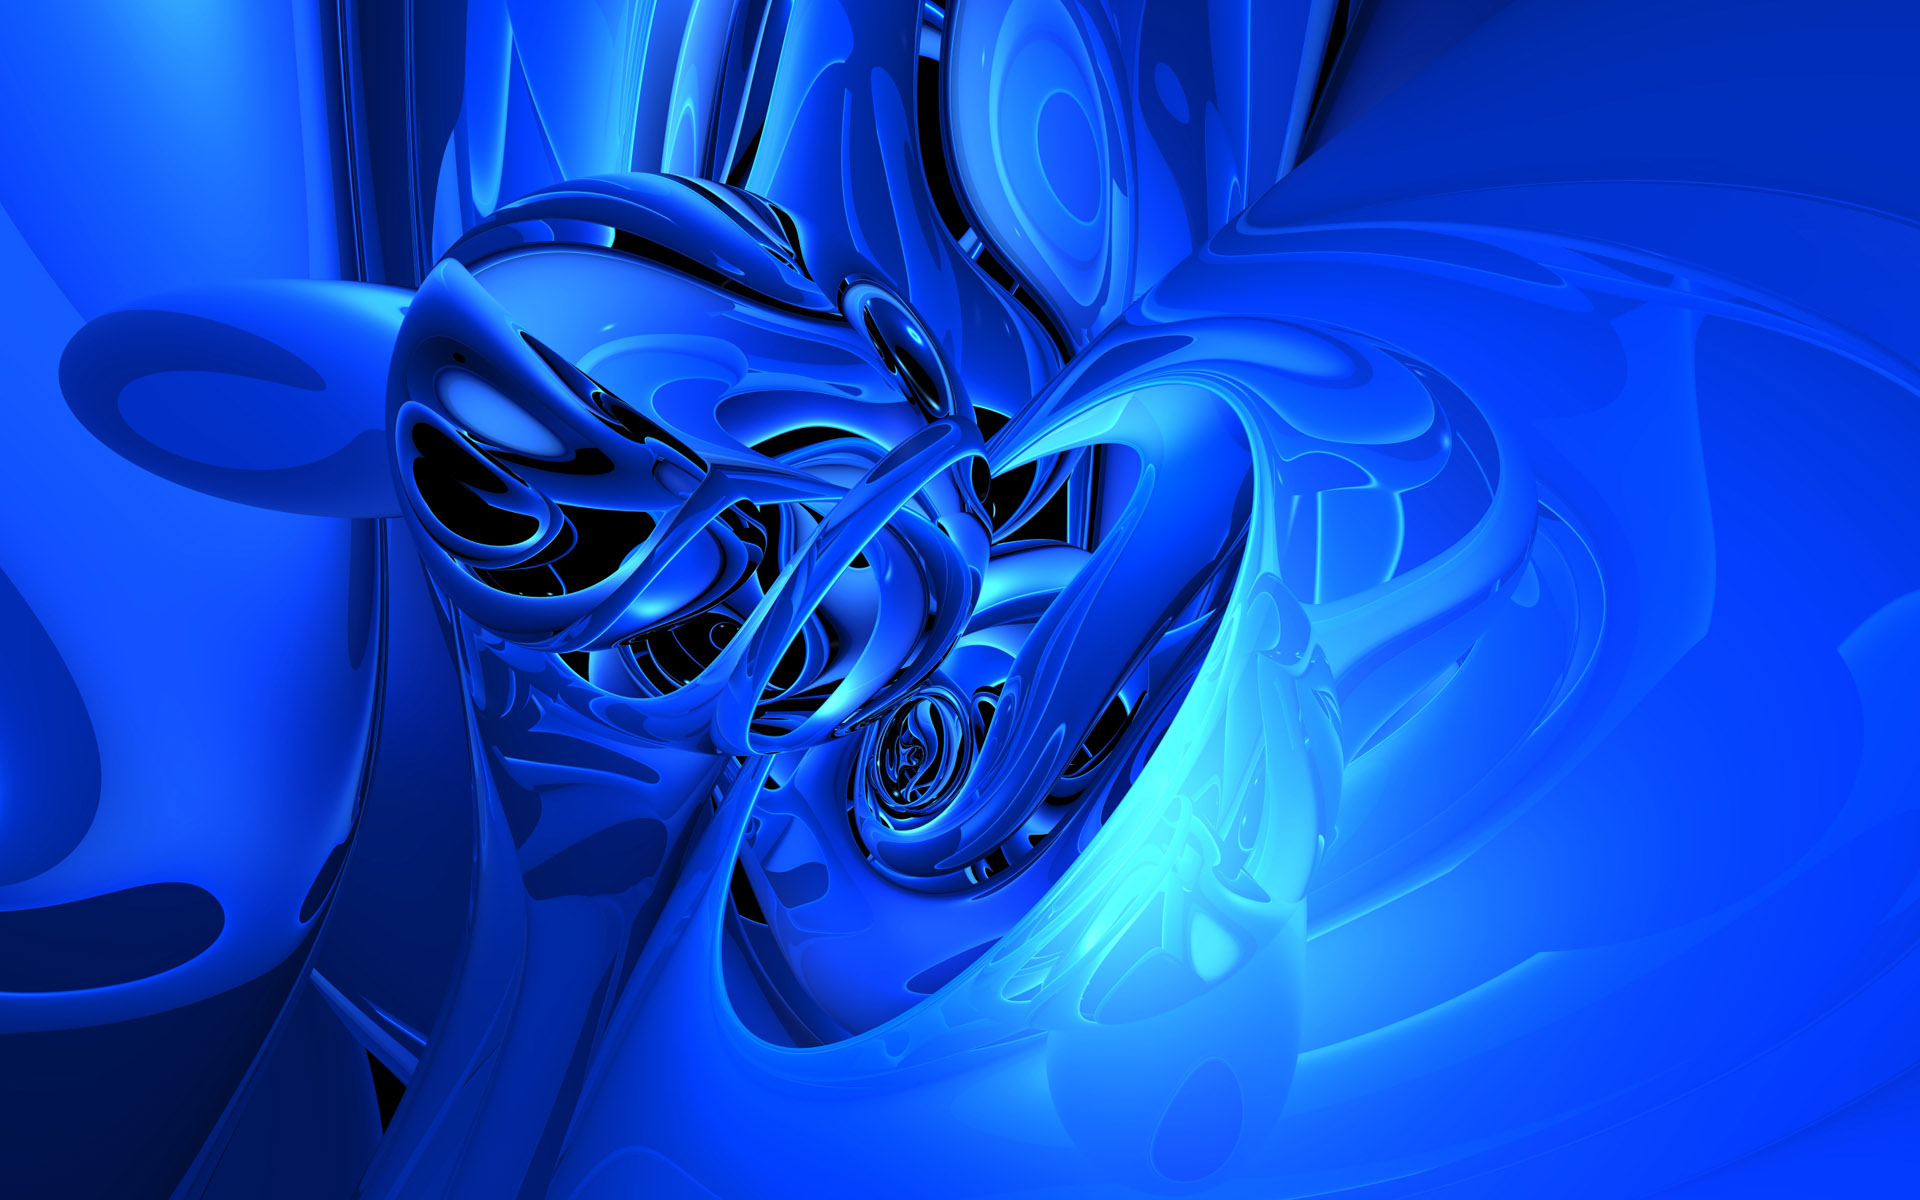 Blue Abstract wallpaper Wallpapers   1920x1200   362314 1920x1200